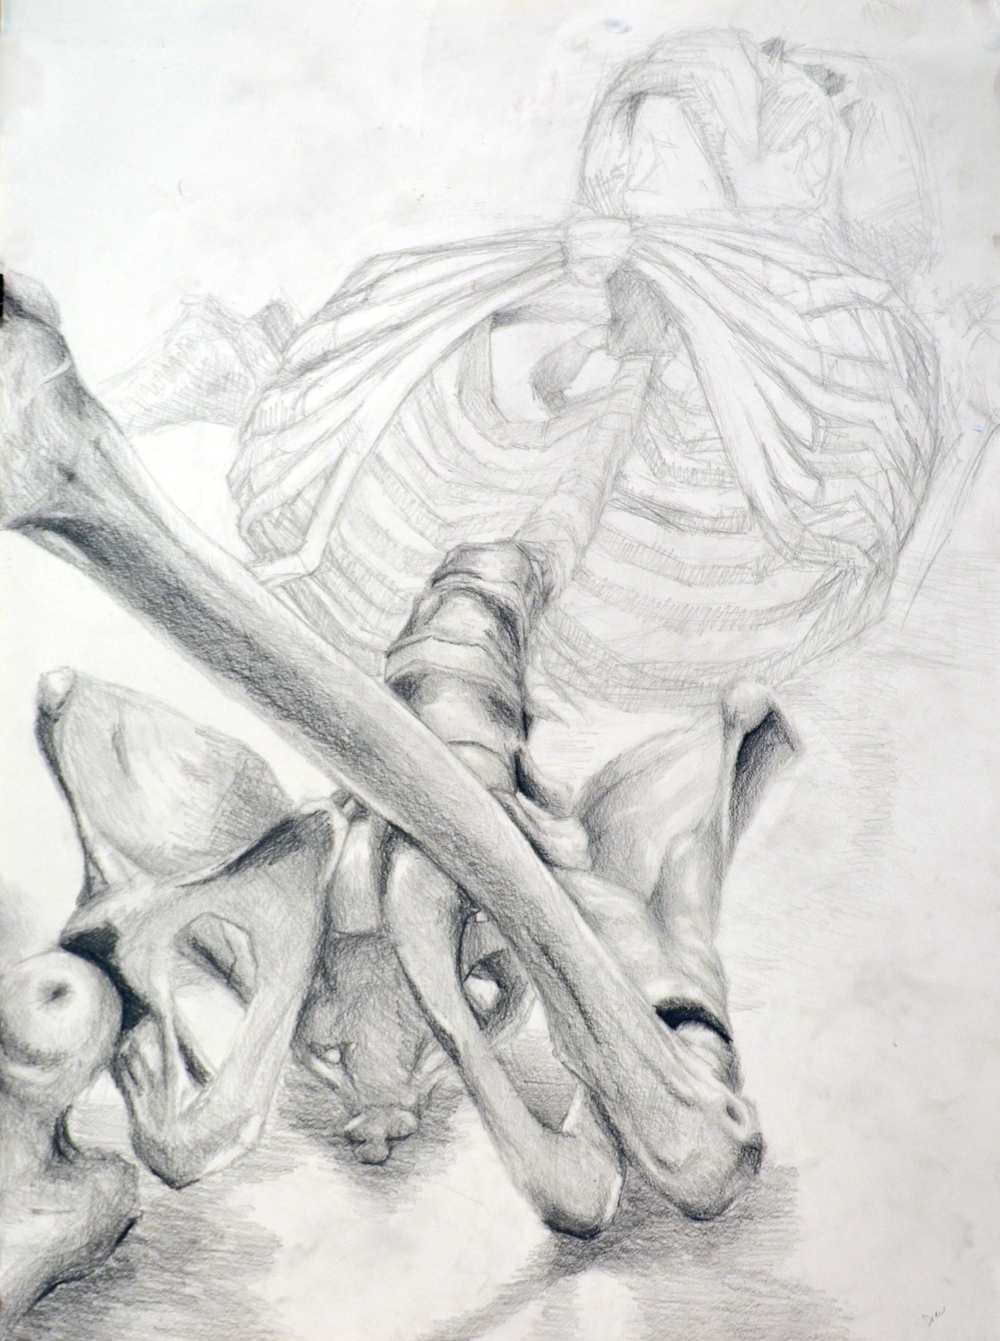 Anatomy and Structure course. Pencil on paper.